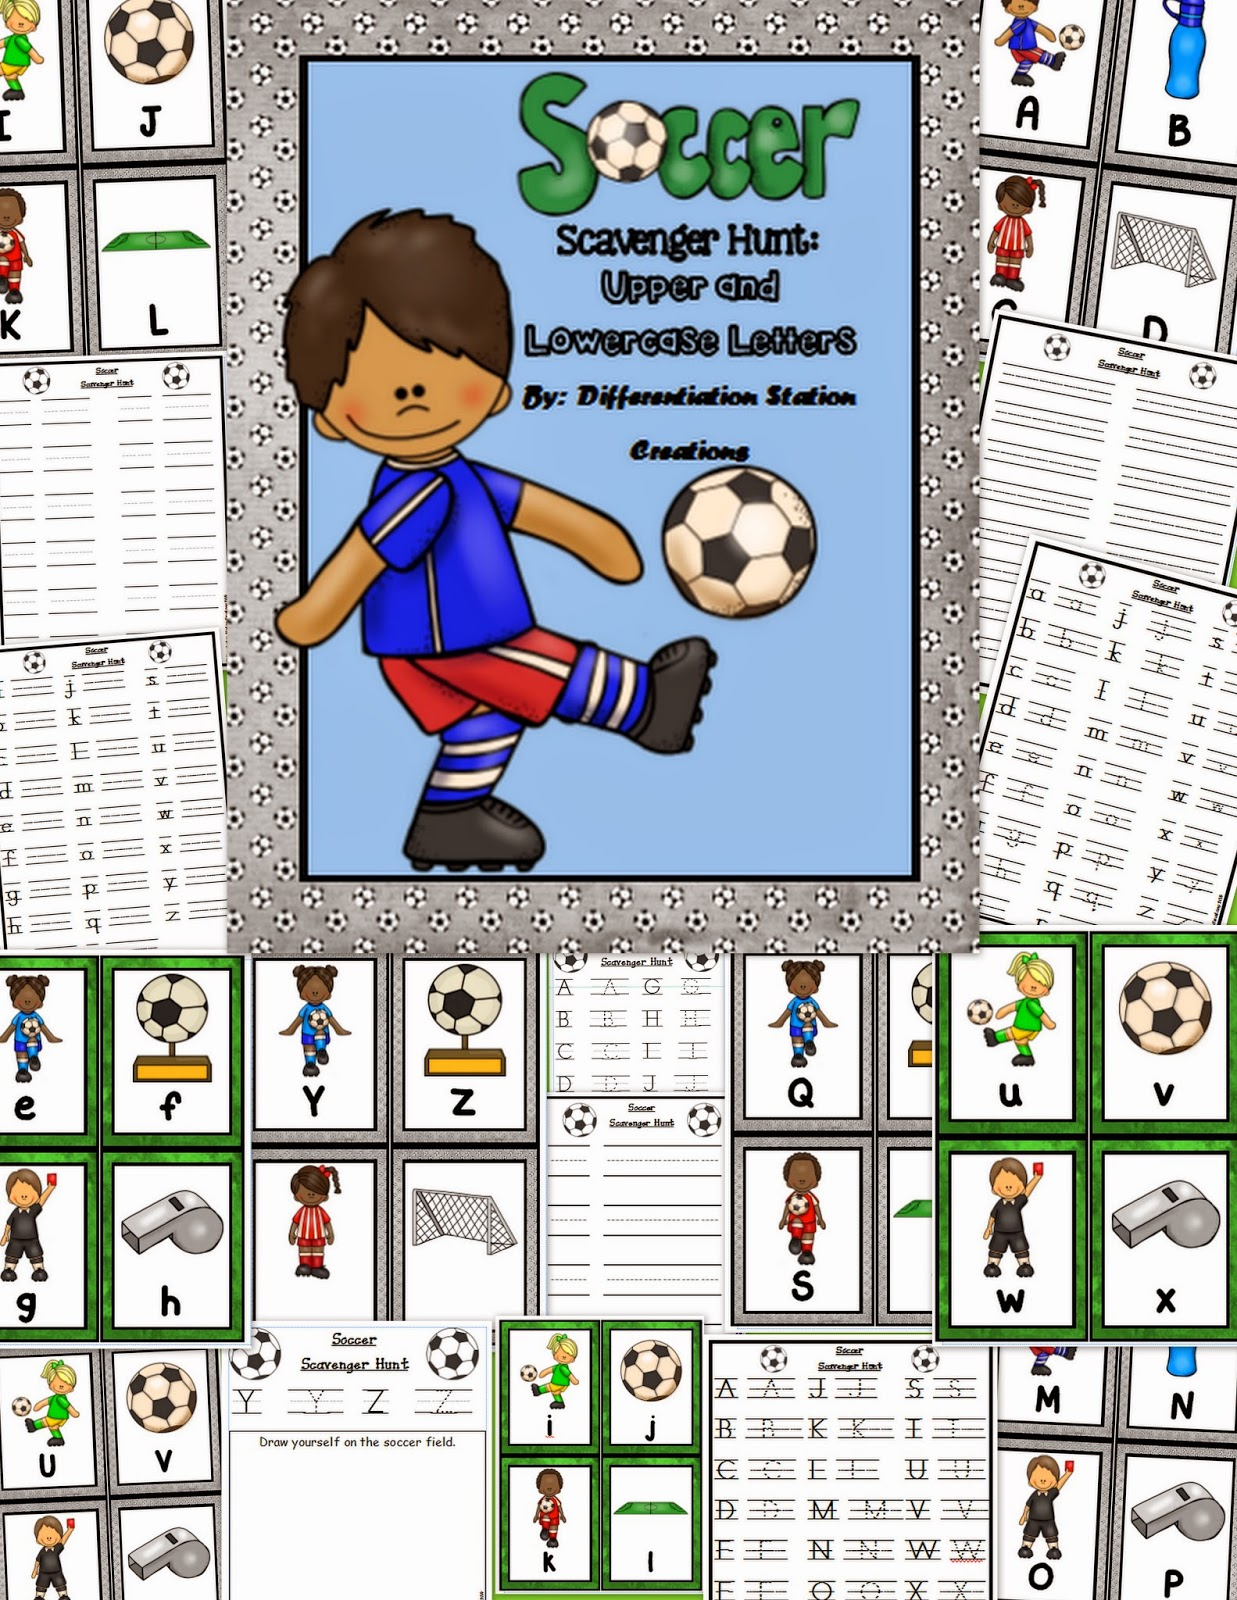 http://www.teacherspayteachers.com/Product/Soccer-Scavenger-Hunt-Uppercase-and-Lowercase-Letters-Printables-1274093